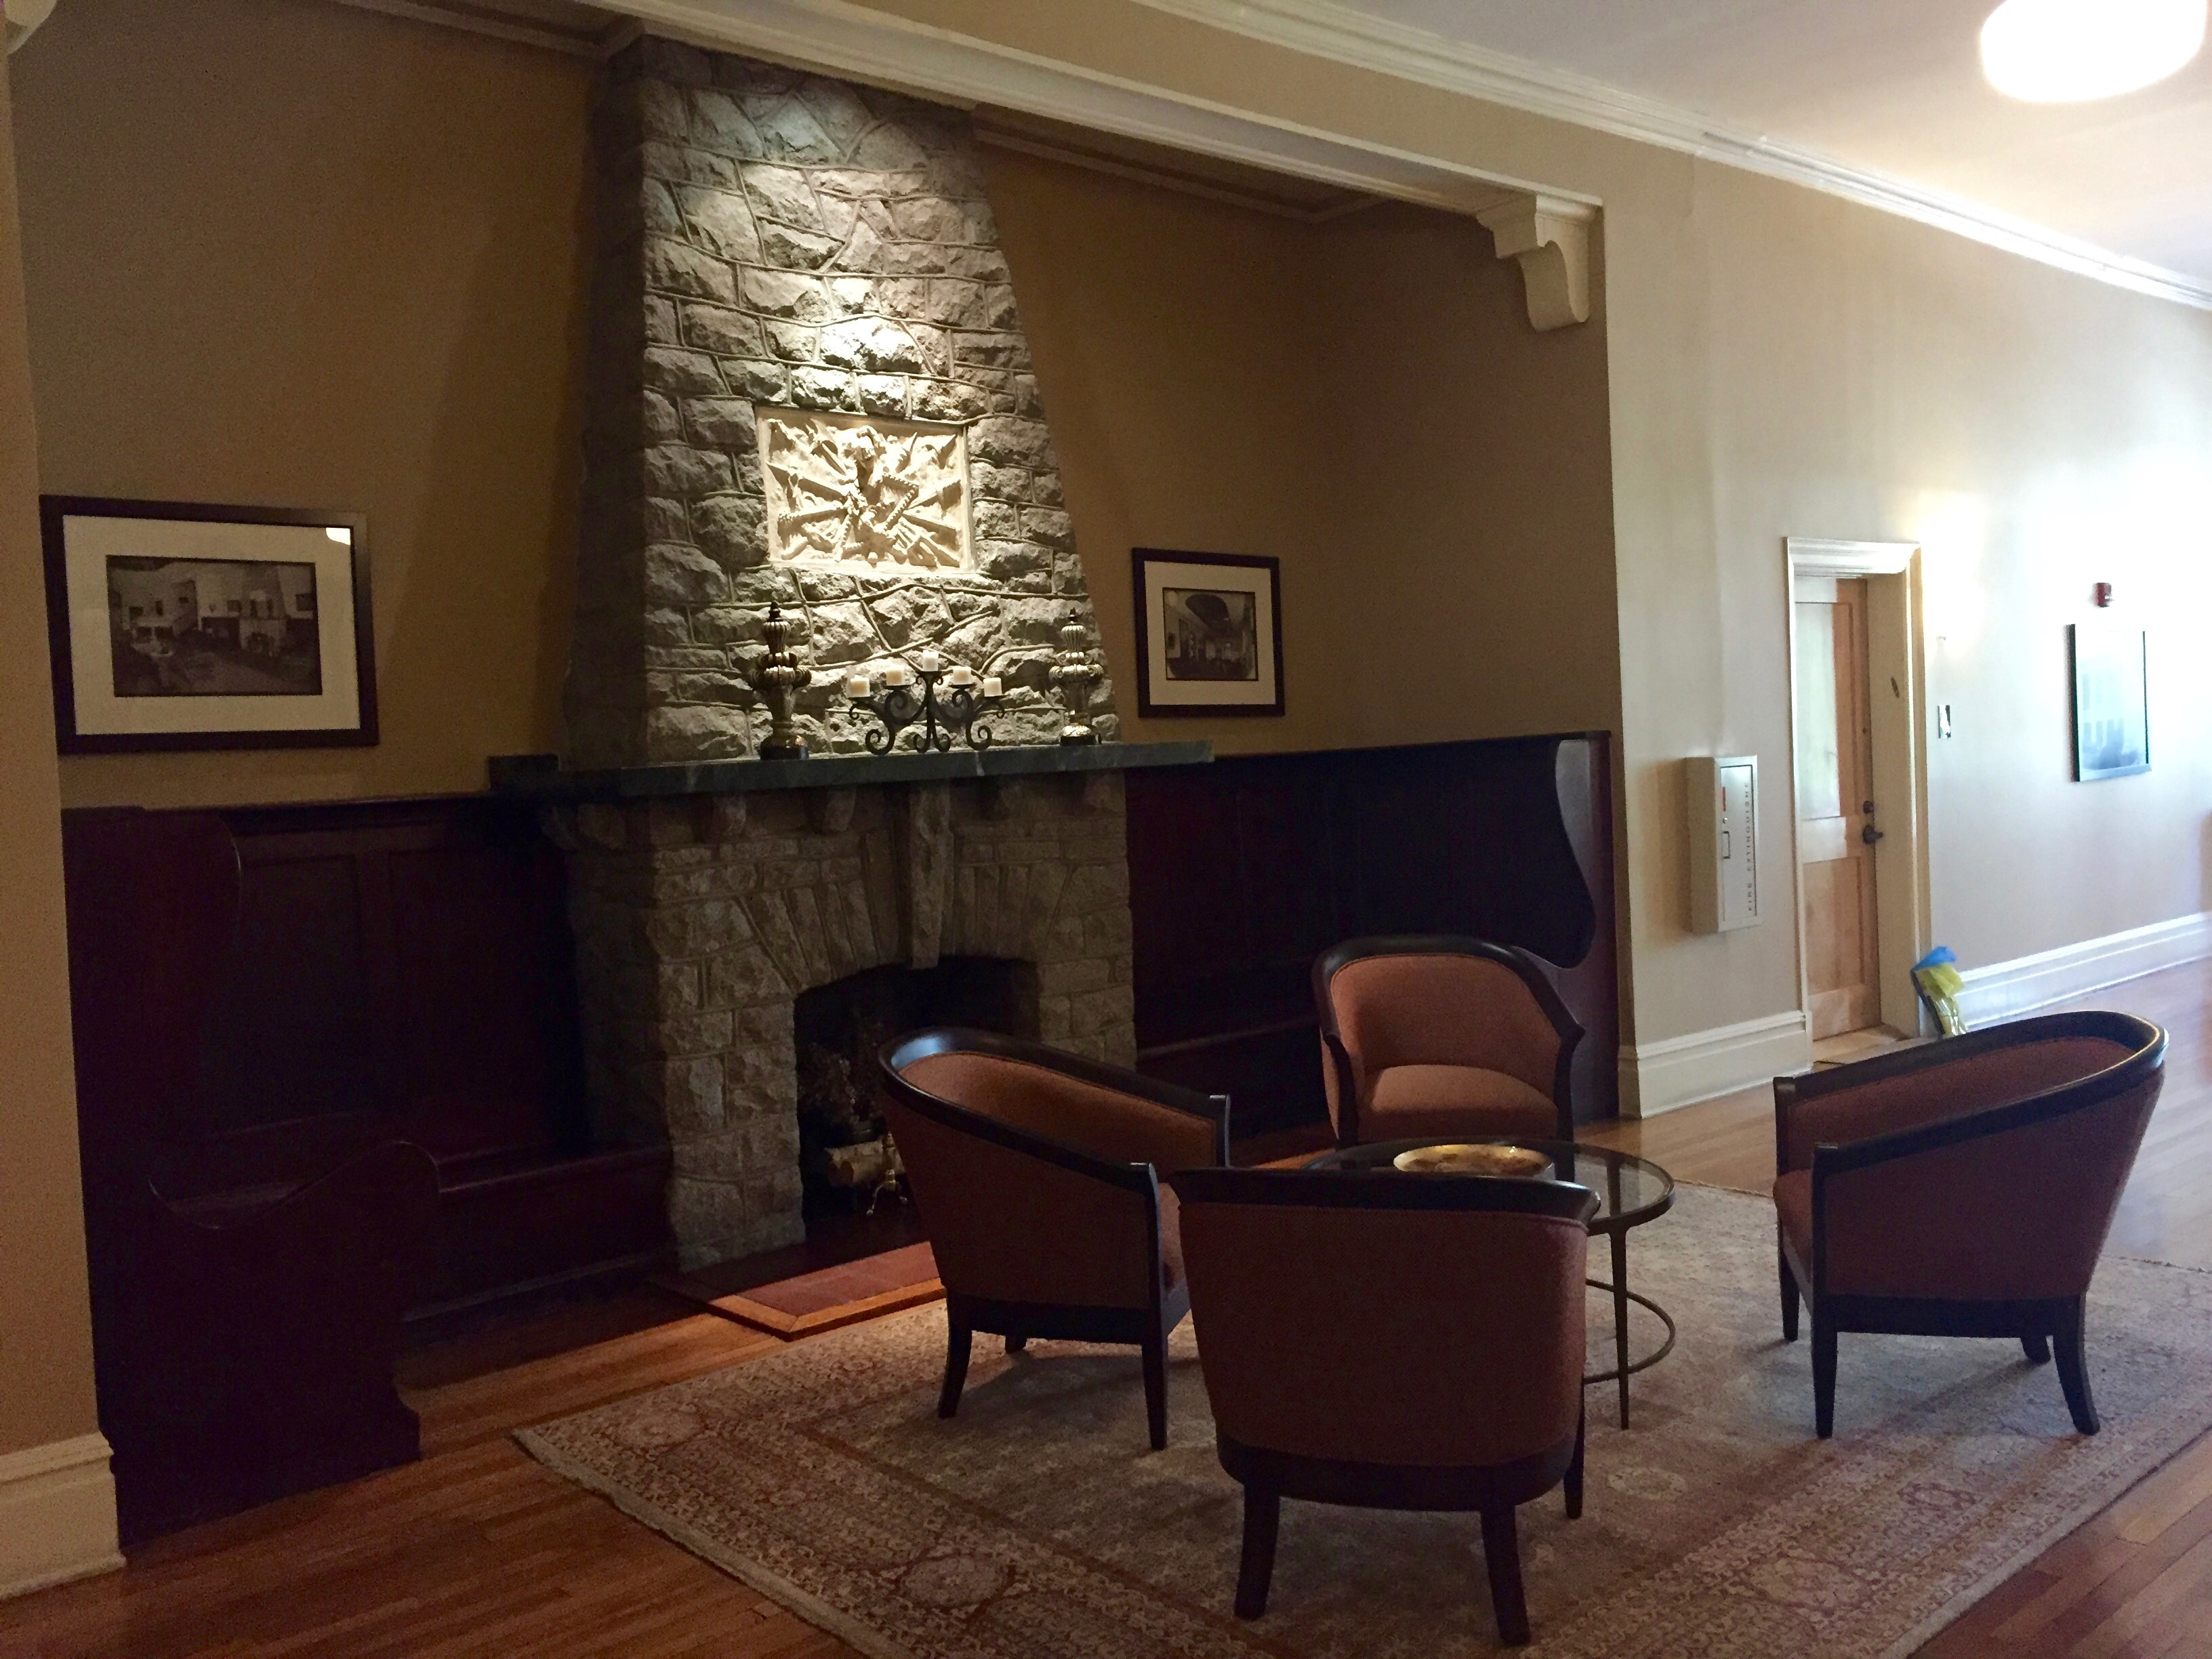 one of the many common areas in the building